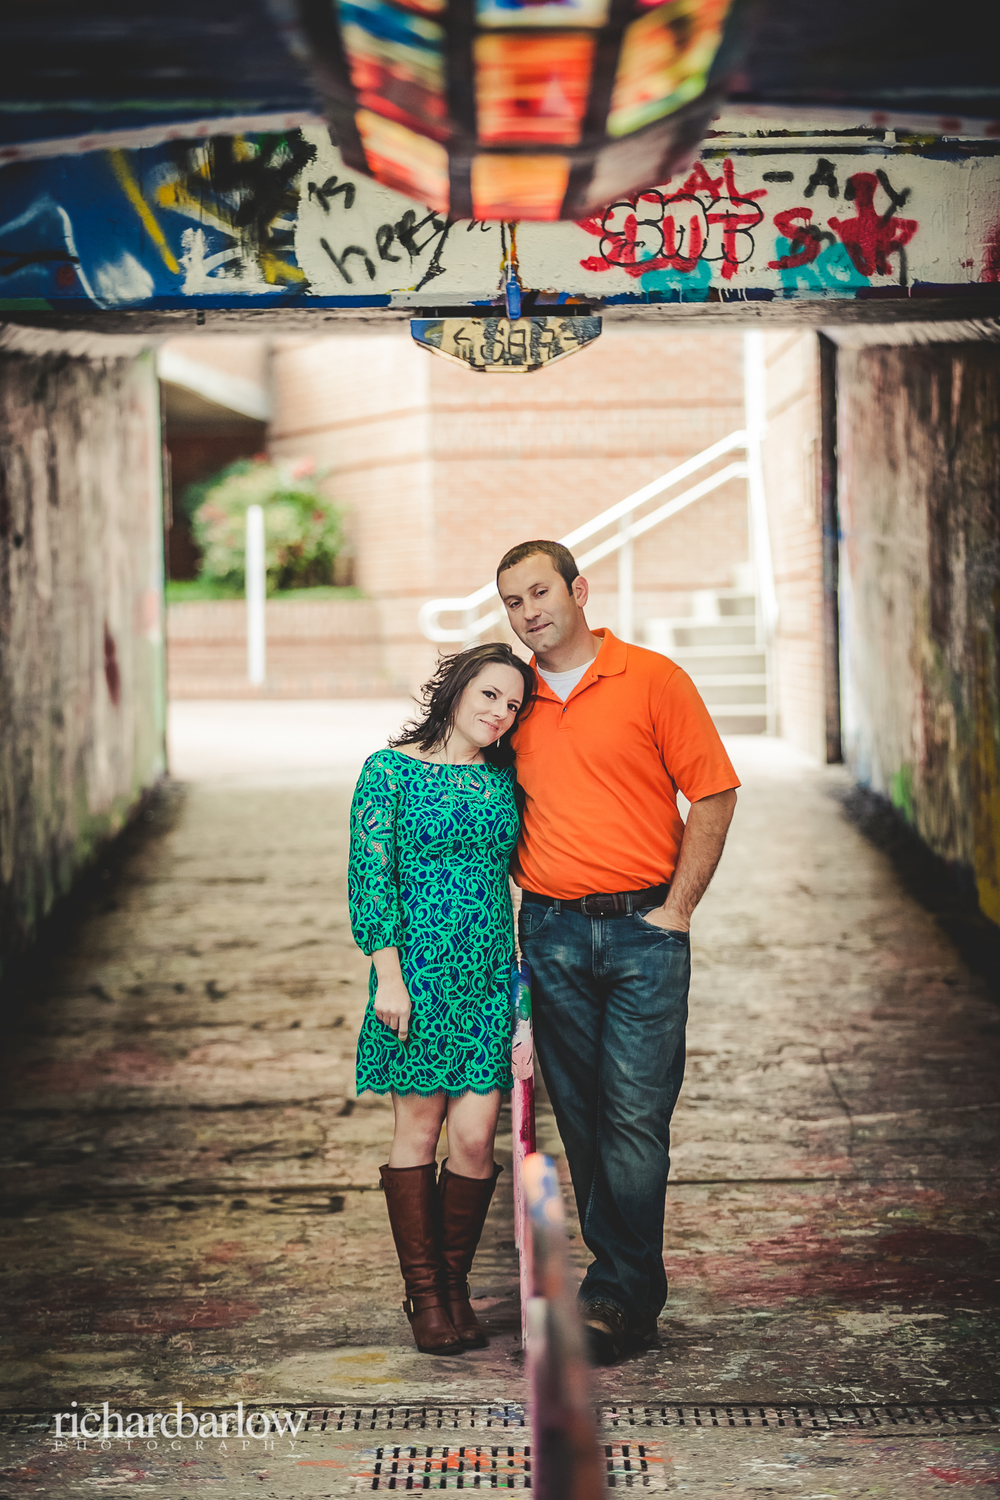 richard barlow photography - Jason and Karen Engagement Session NC State-11